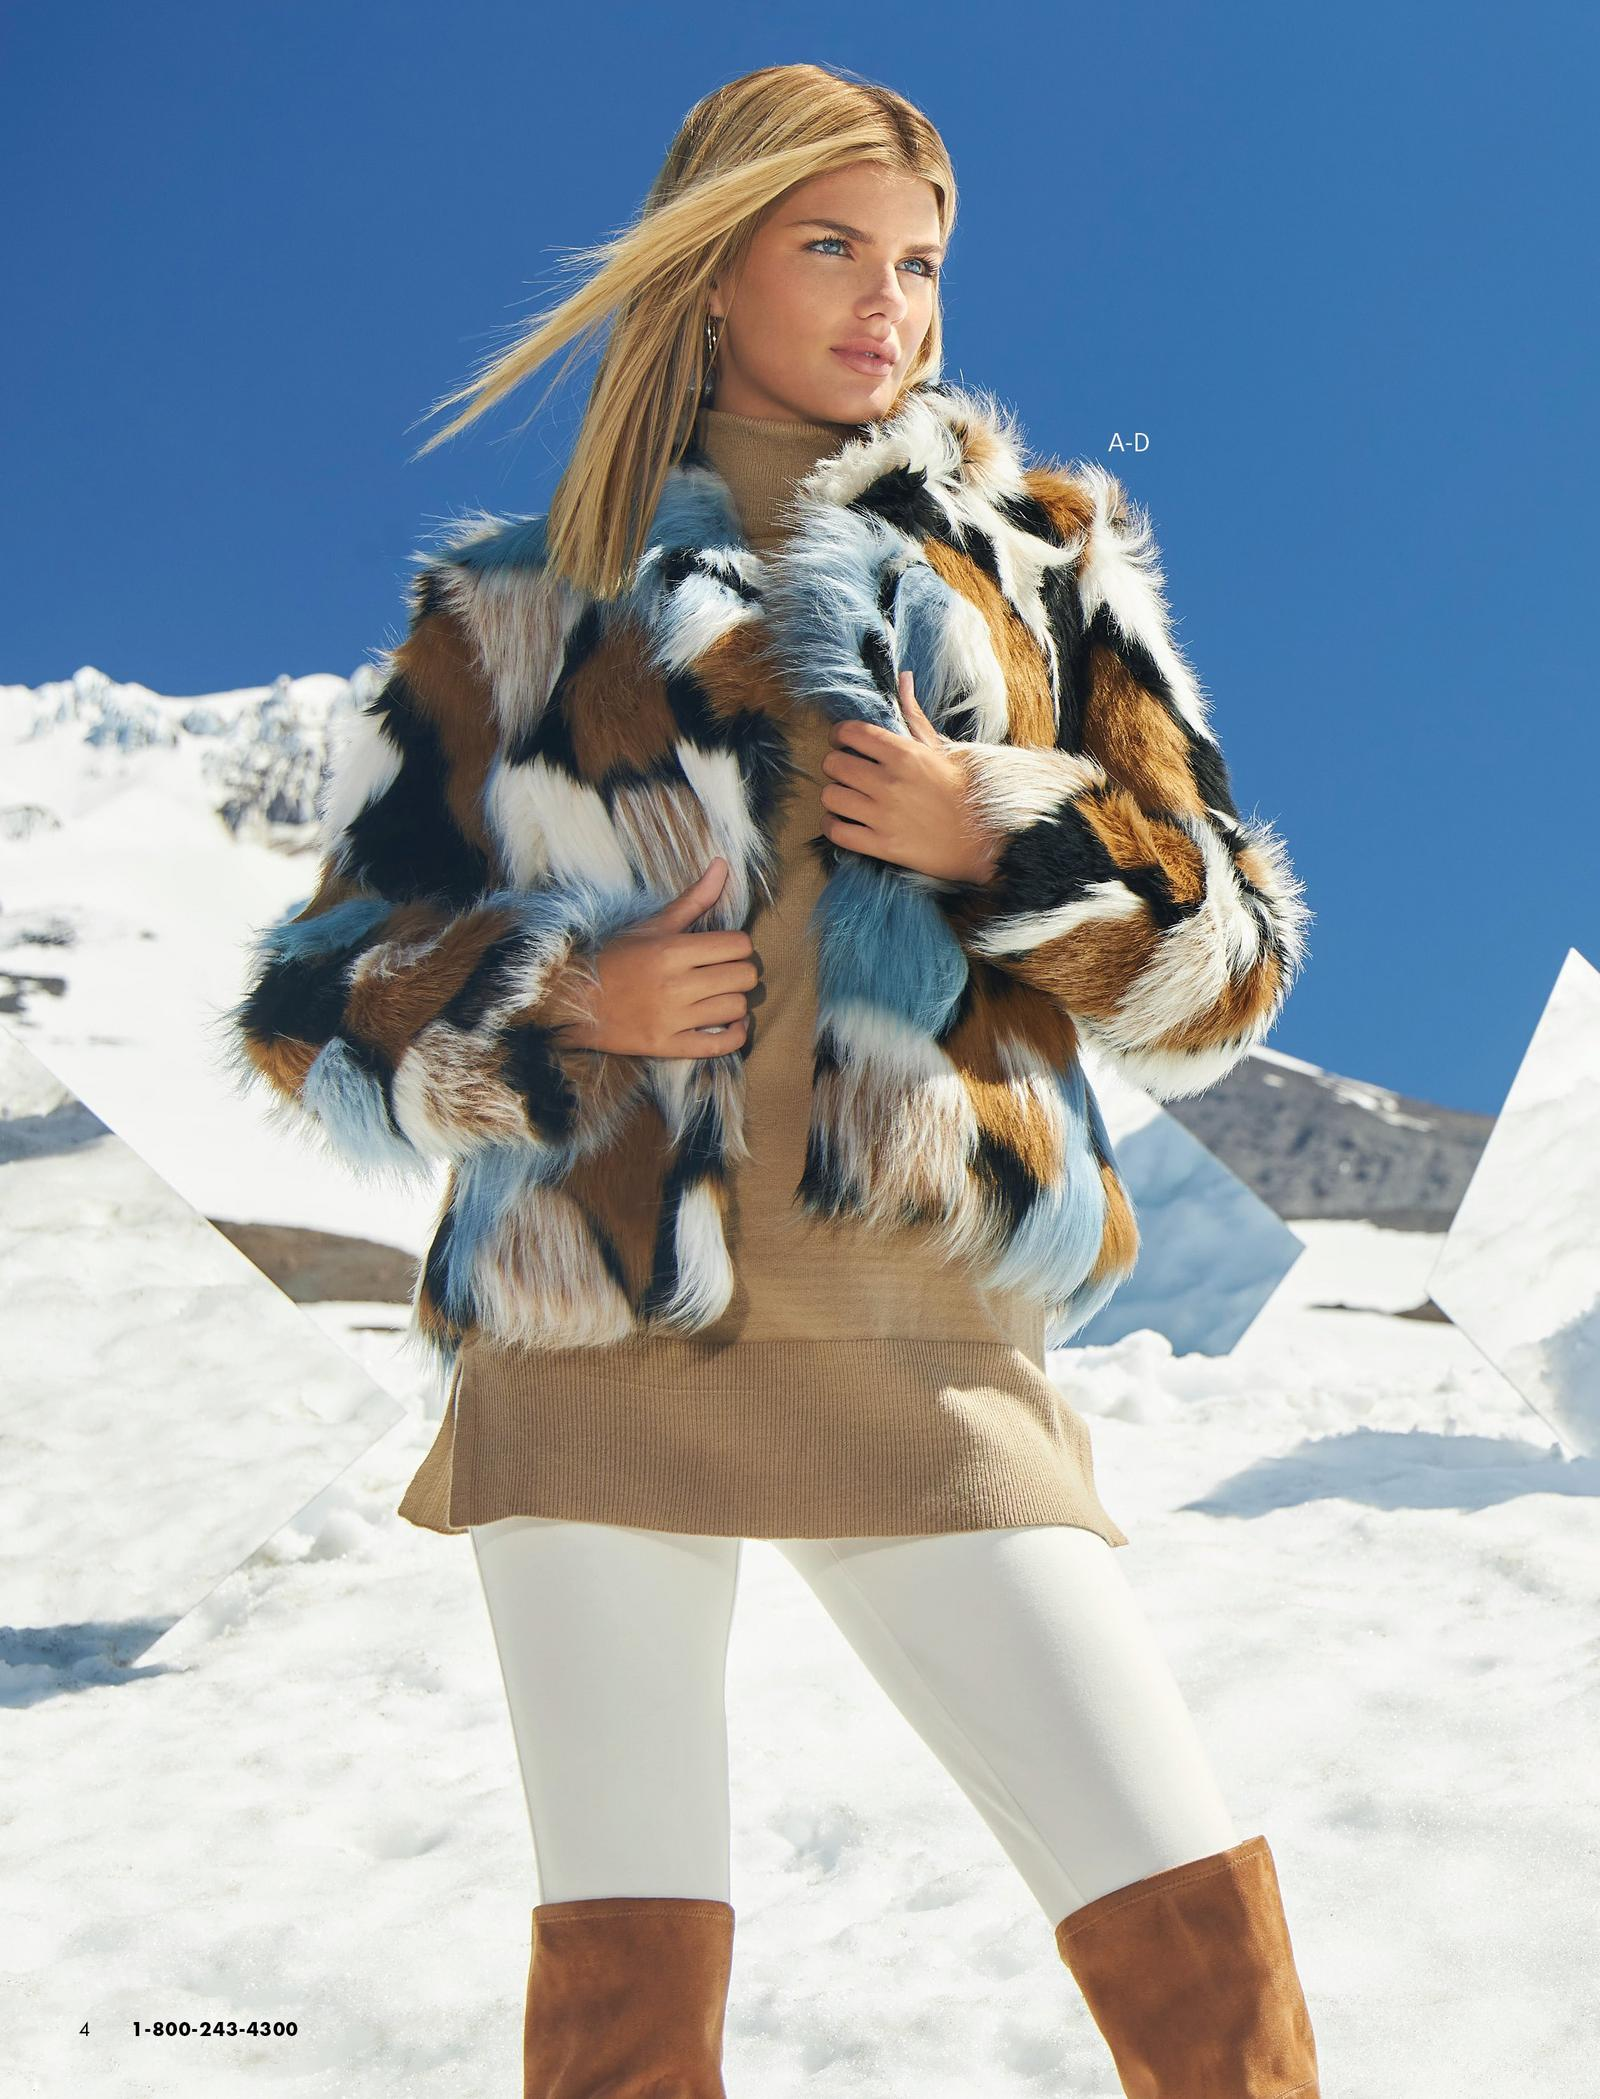 model wearing a multicolored faux-fur chubby jacket, tan turtleneck sweater, off-white leggings, and over-the-knee brown suede boots.